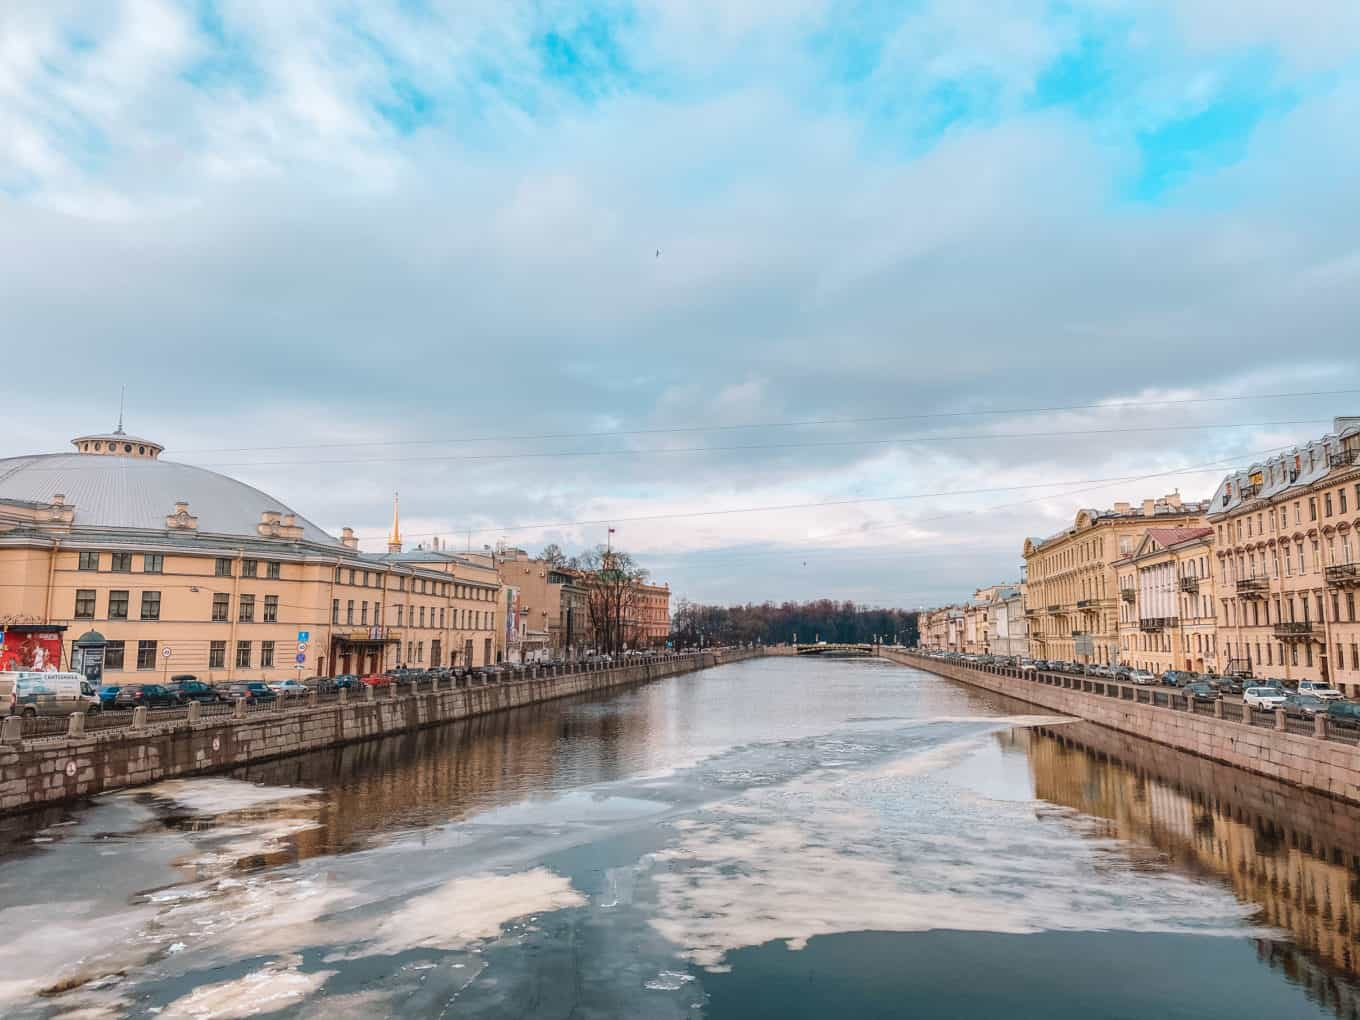 7-day itinerary for Russia: 1 week in Moscow and St. Petersburg